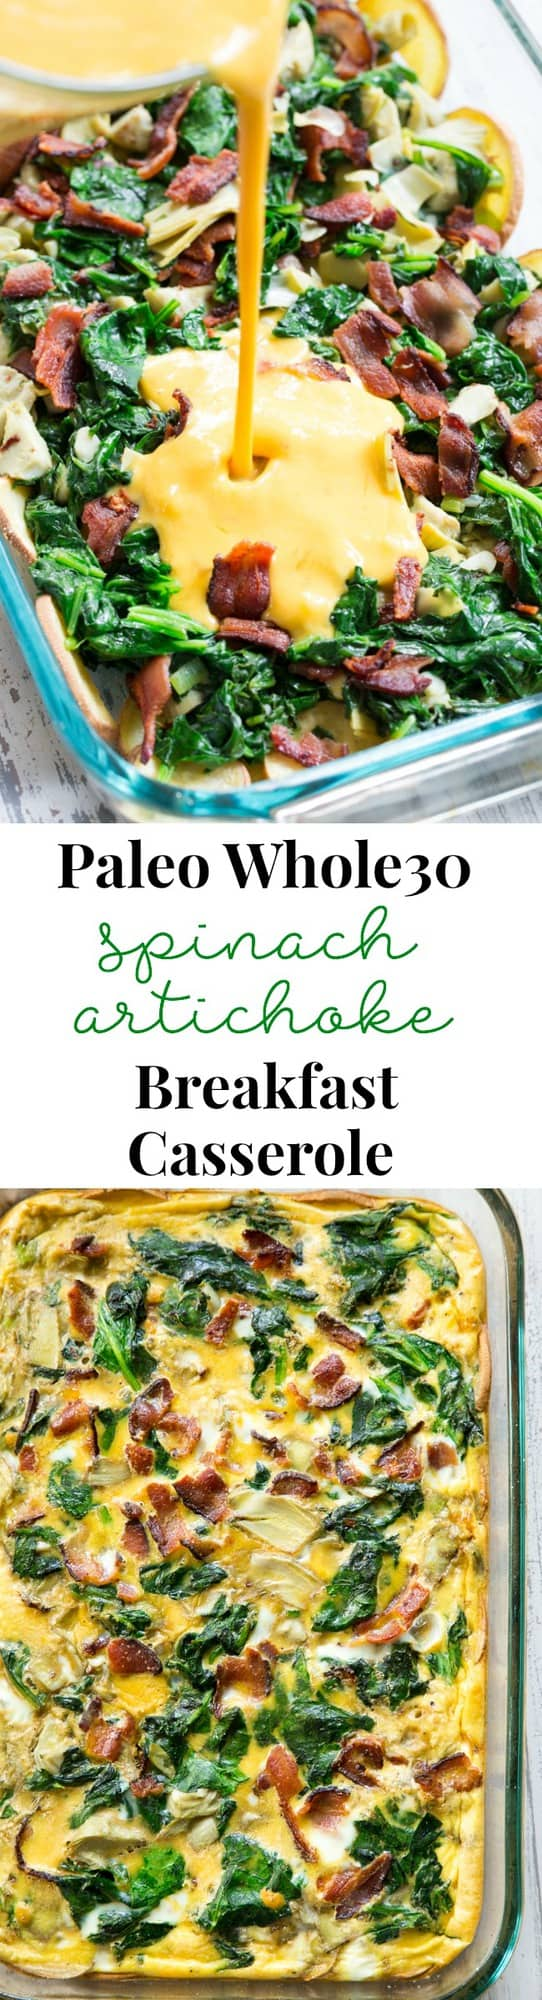 This spinach artichoke breakfast casserole starts with an easy roasted sweet potato crust and is loaded with veggies, bacon, and flavor! Dairy-free, grain free, gluten free, paleo and Whole30 compliant. It's perfect to make ahead of time for easy, satisfying breakfast all week